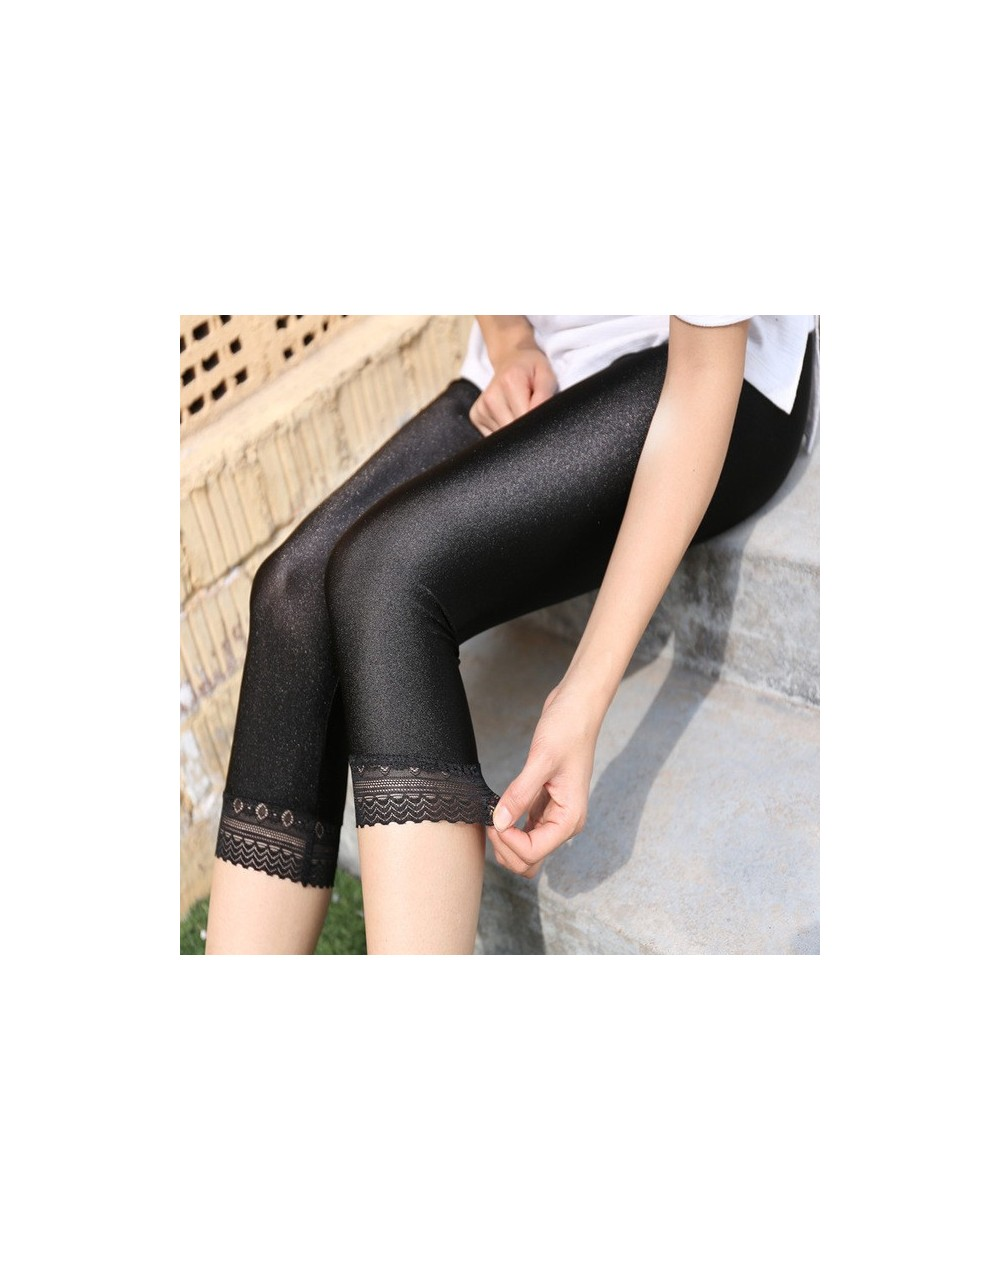 Women's Calf-Length Pants Slim Solid Female Shiny pants Women Mujer Simple Casual Elasticity Trousers Large size S-5XL For W...